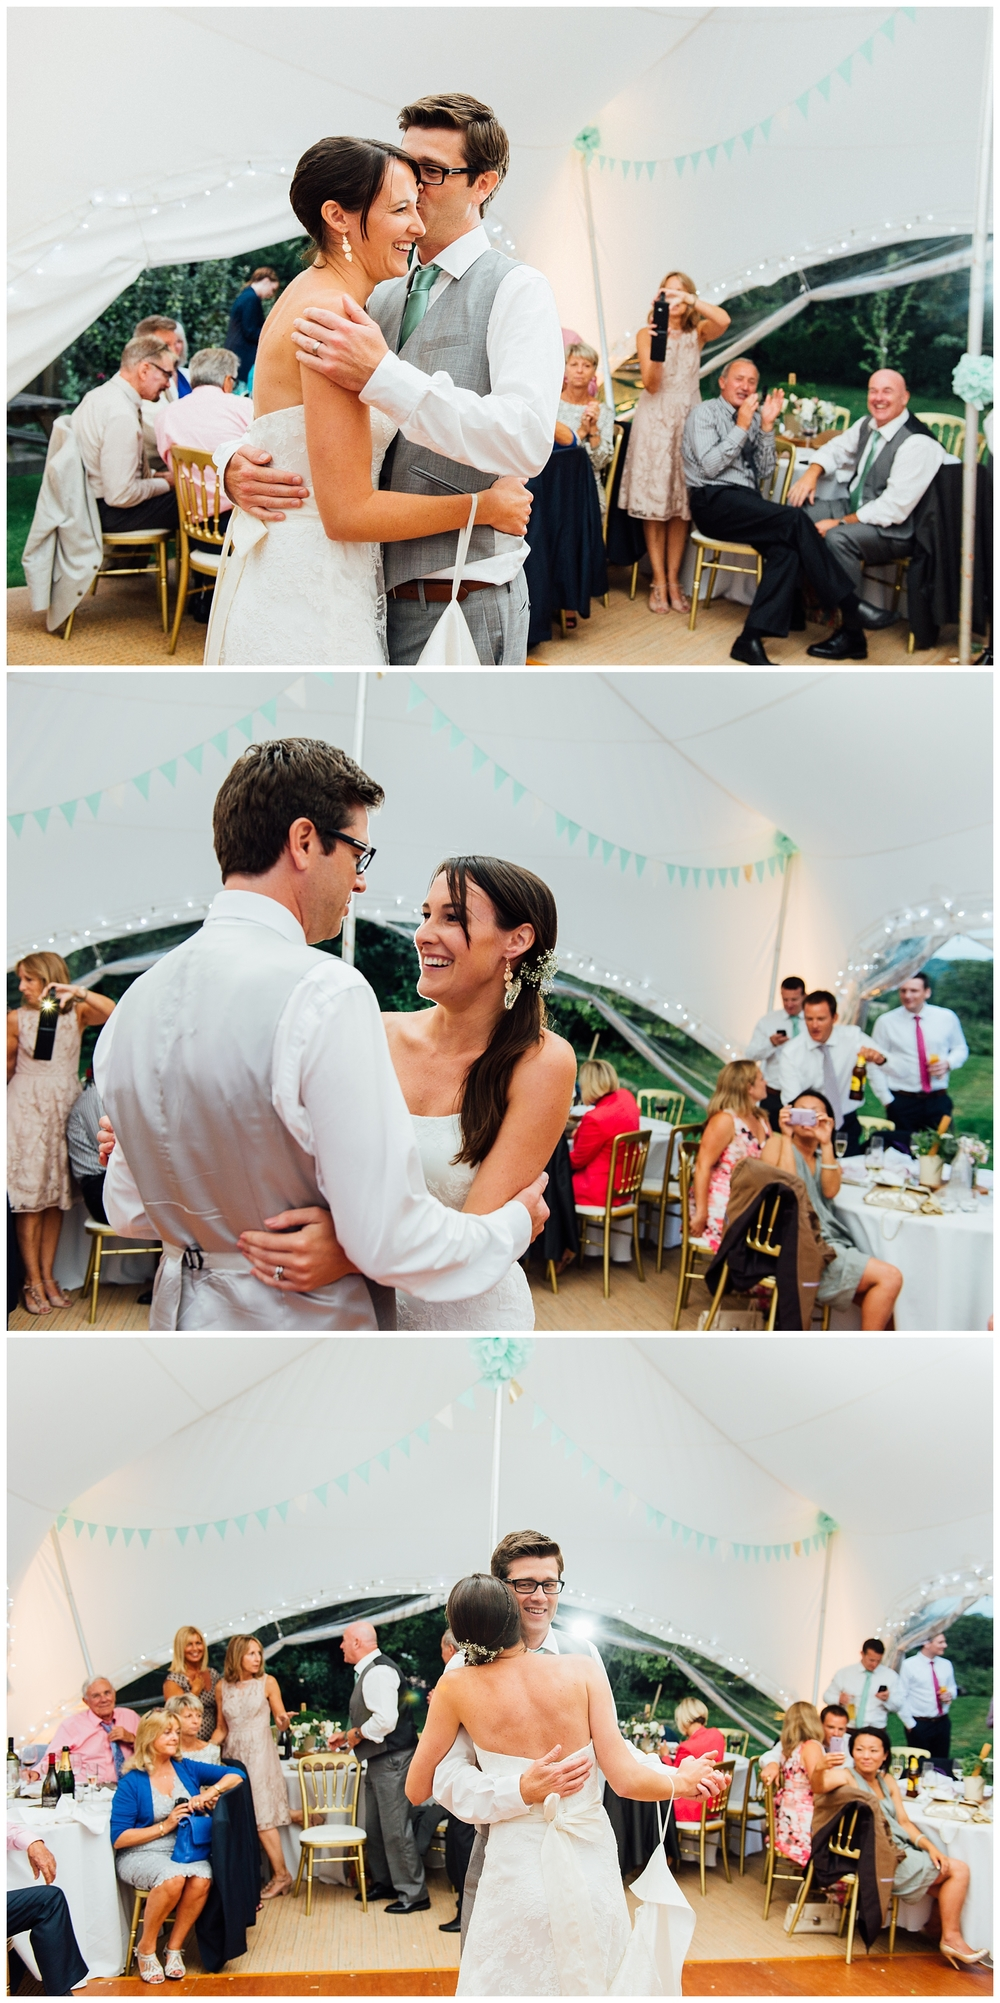 Nikki_Cooper_Photography_Lucy&Scott_Wedding_Photos_The_Crab_Tree_Pub_Horsham_1148.jpg